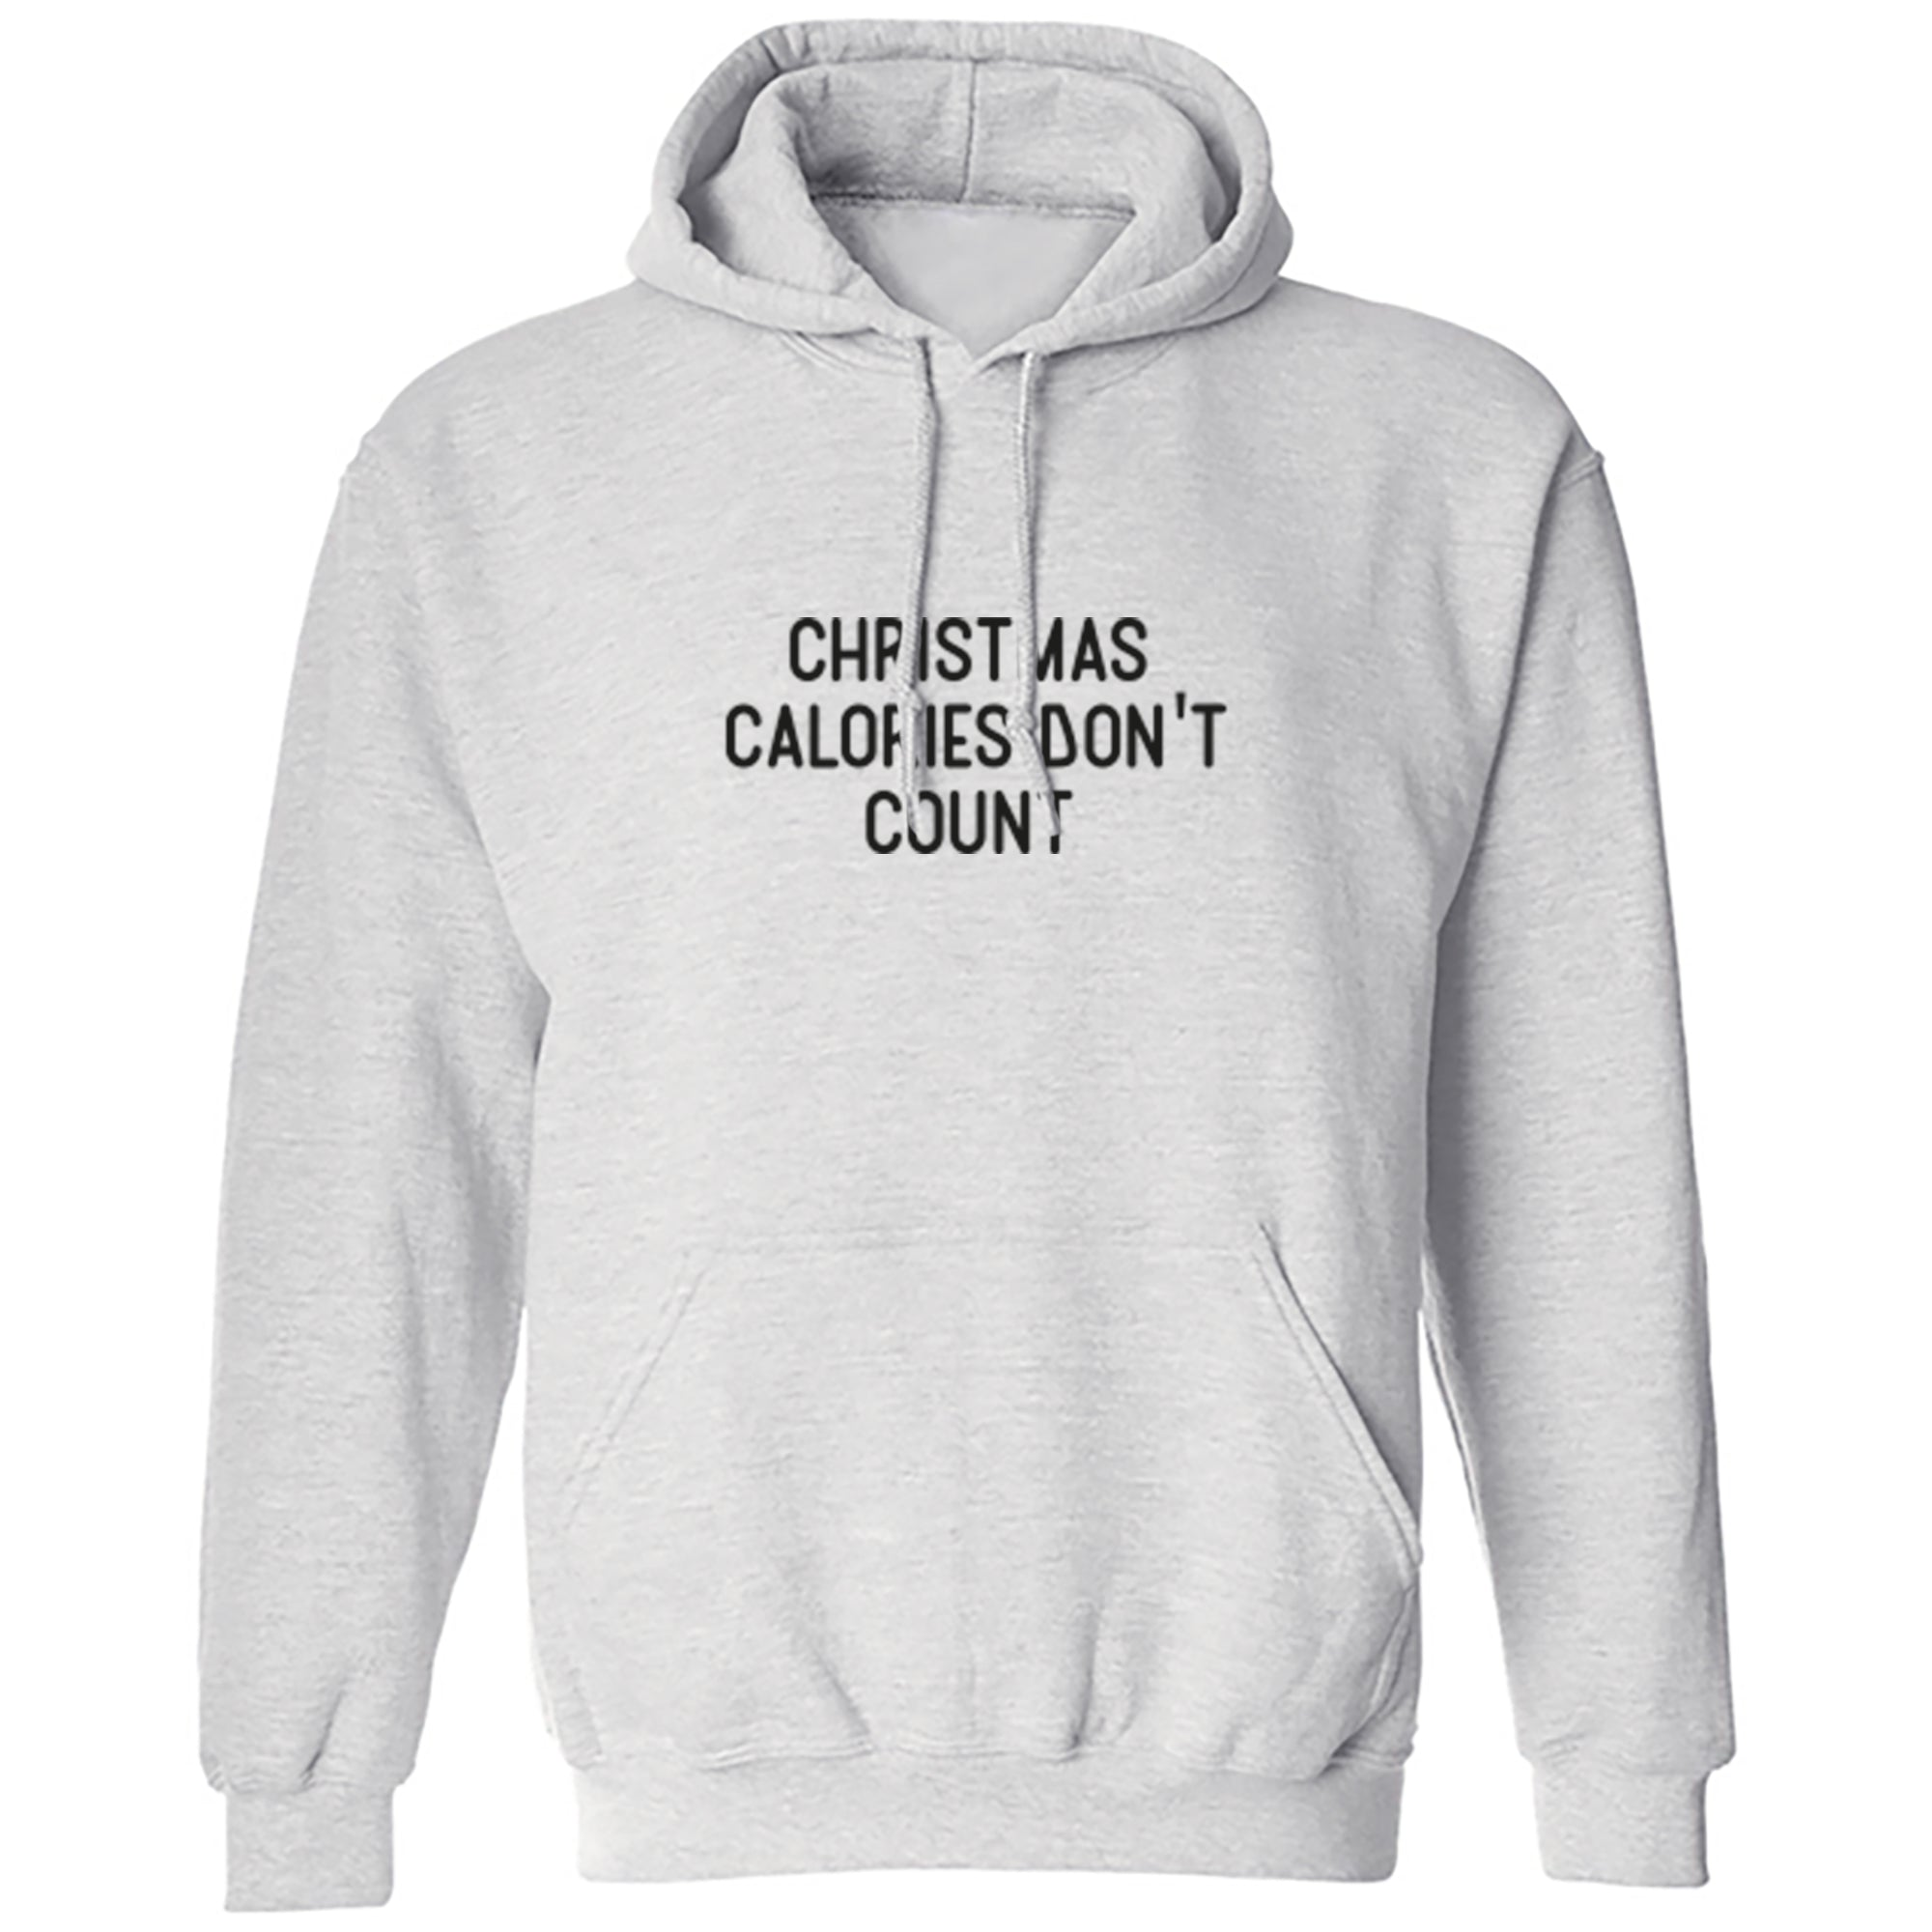 Christmas Calories Don't Count Unisex Hoodie S1176